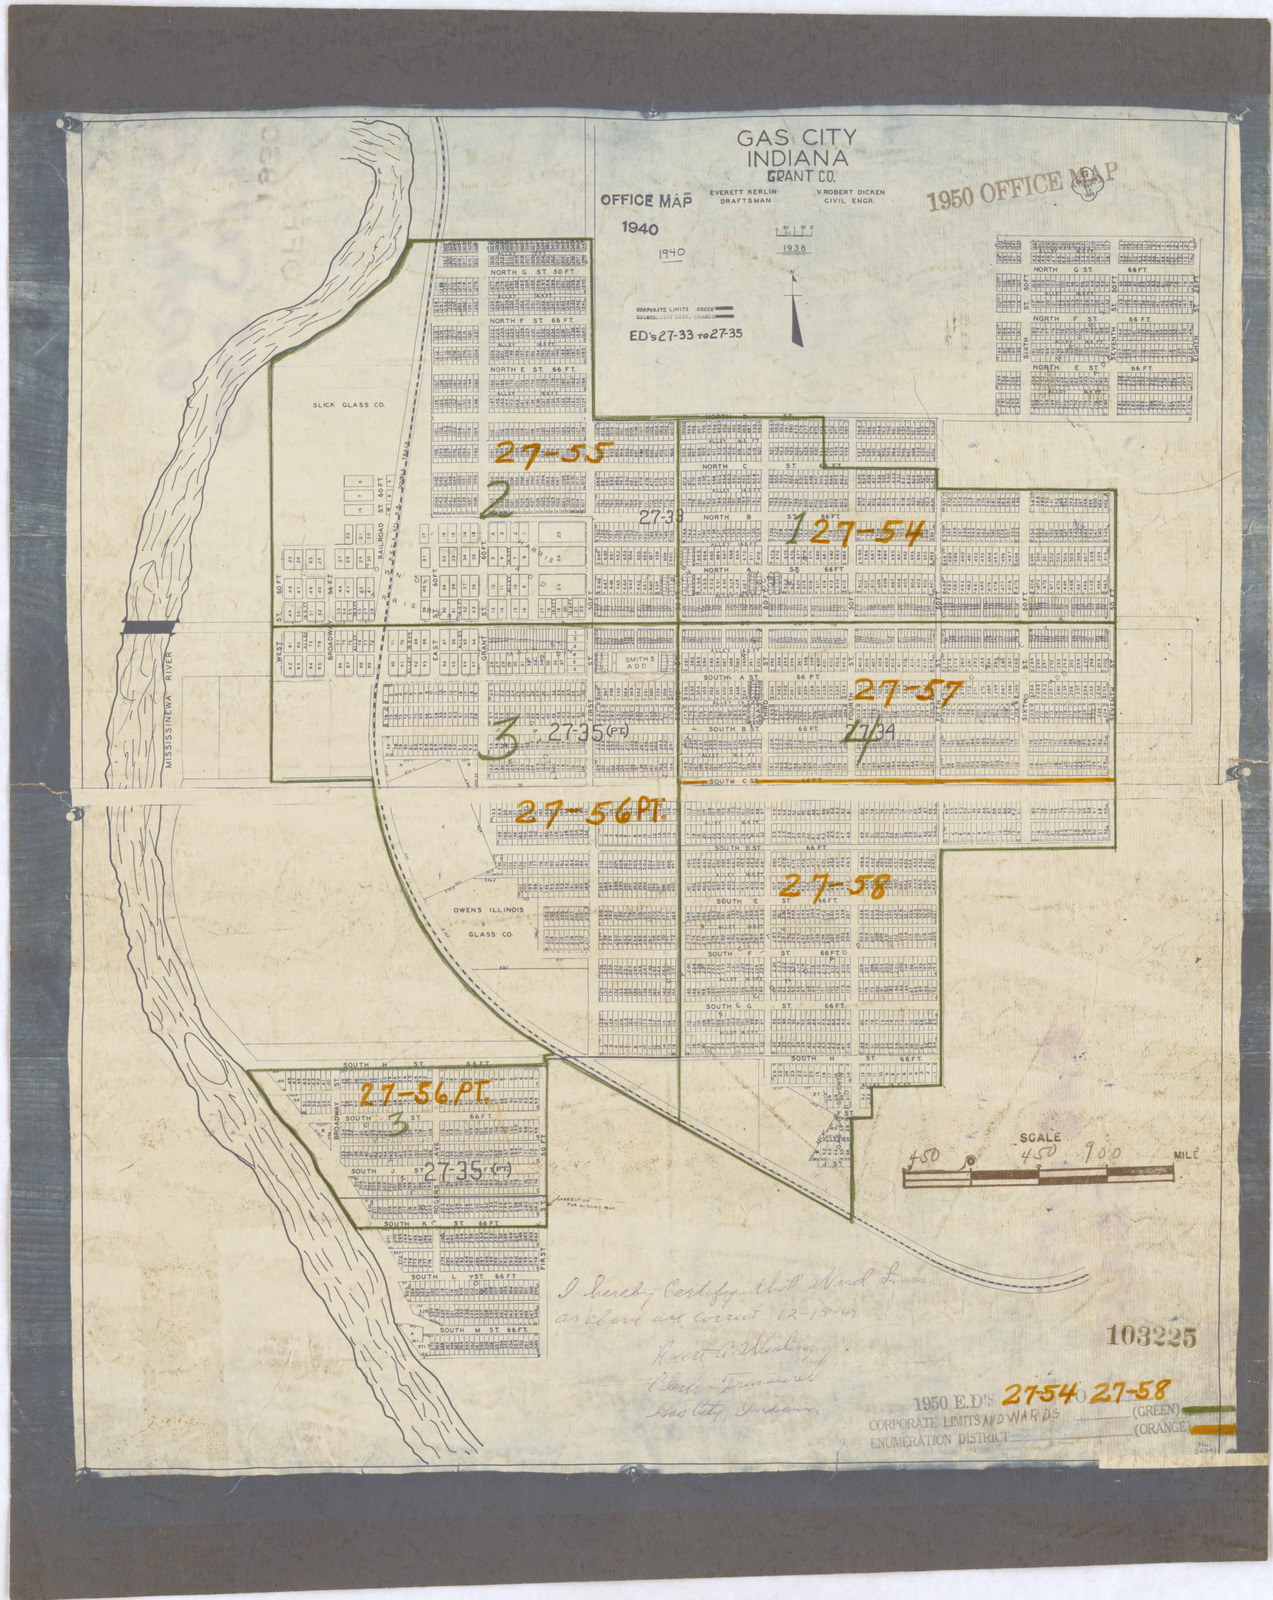 Gas City Indiana Map.1950 Census Enumeration District Maps Indiana In Grant County